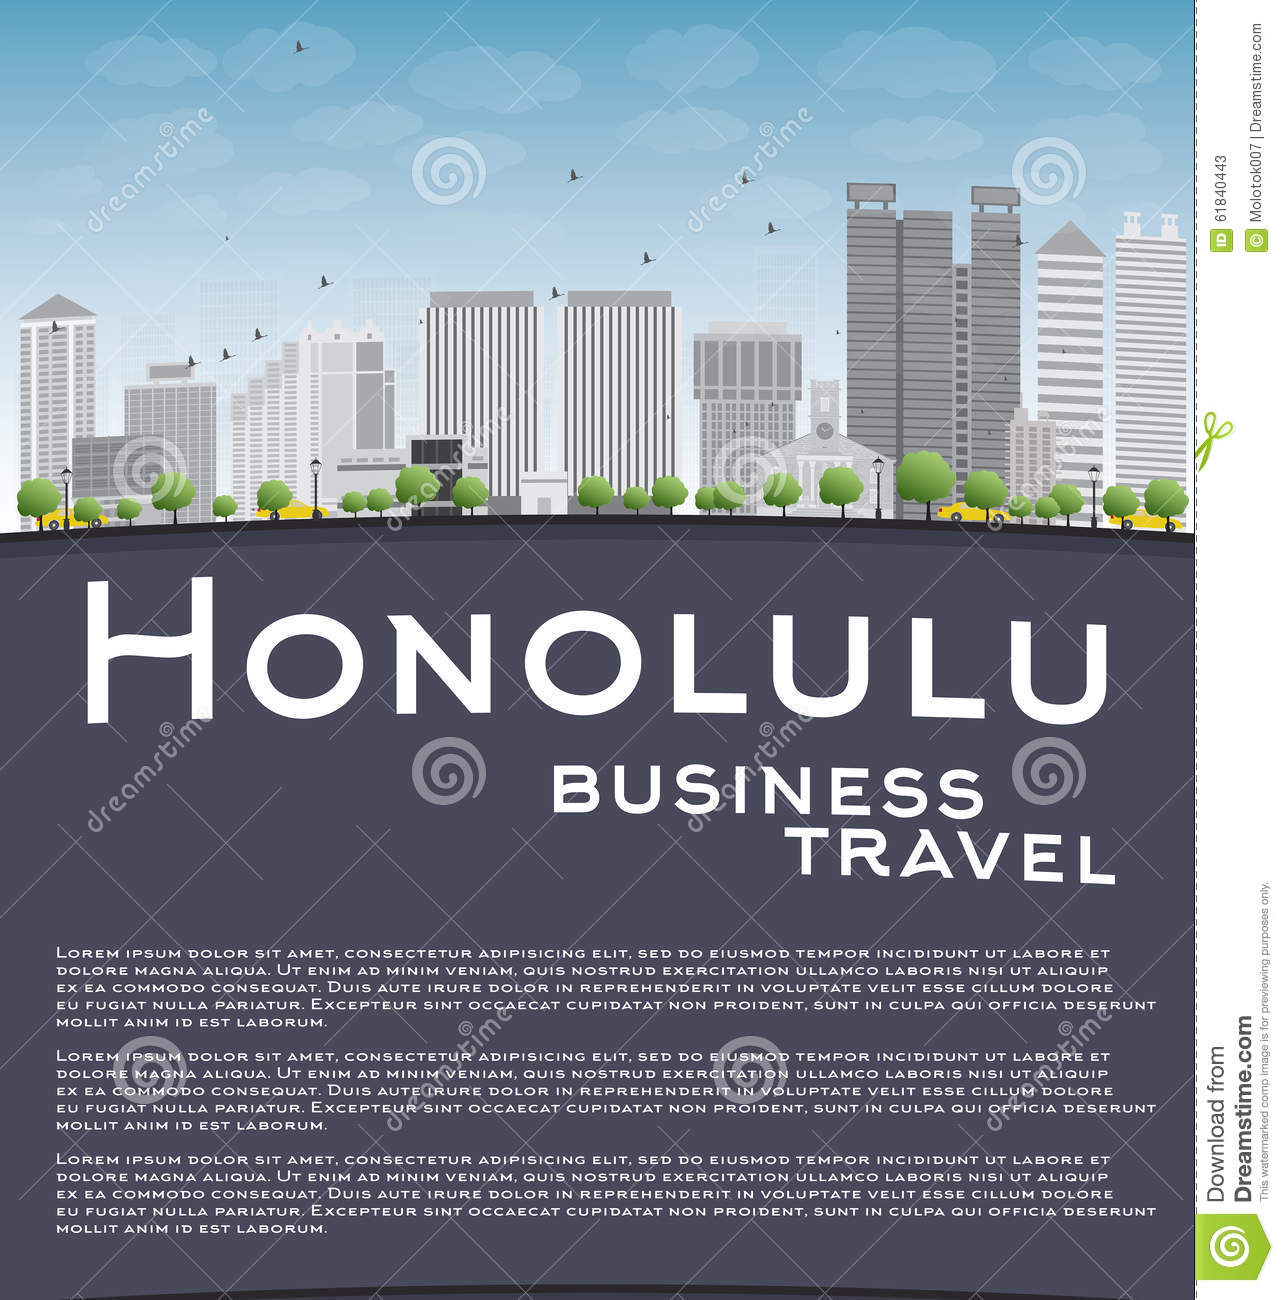 Business cards business cards honolulu business cards honolulu reheart